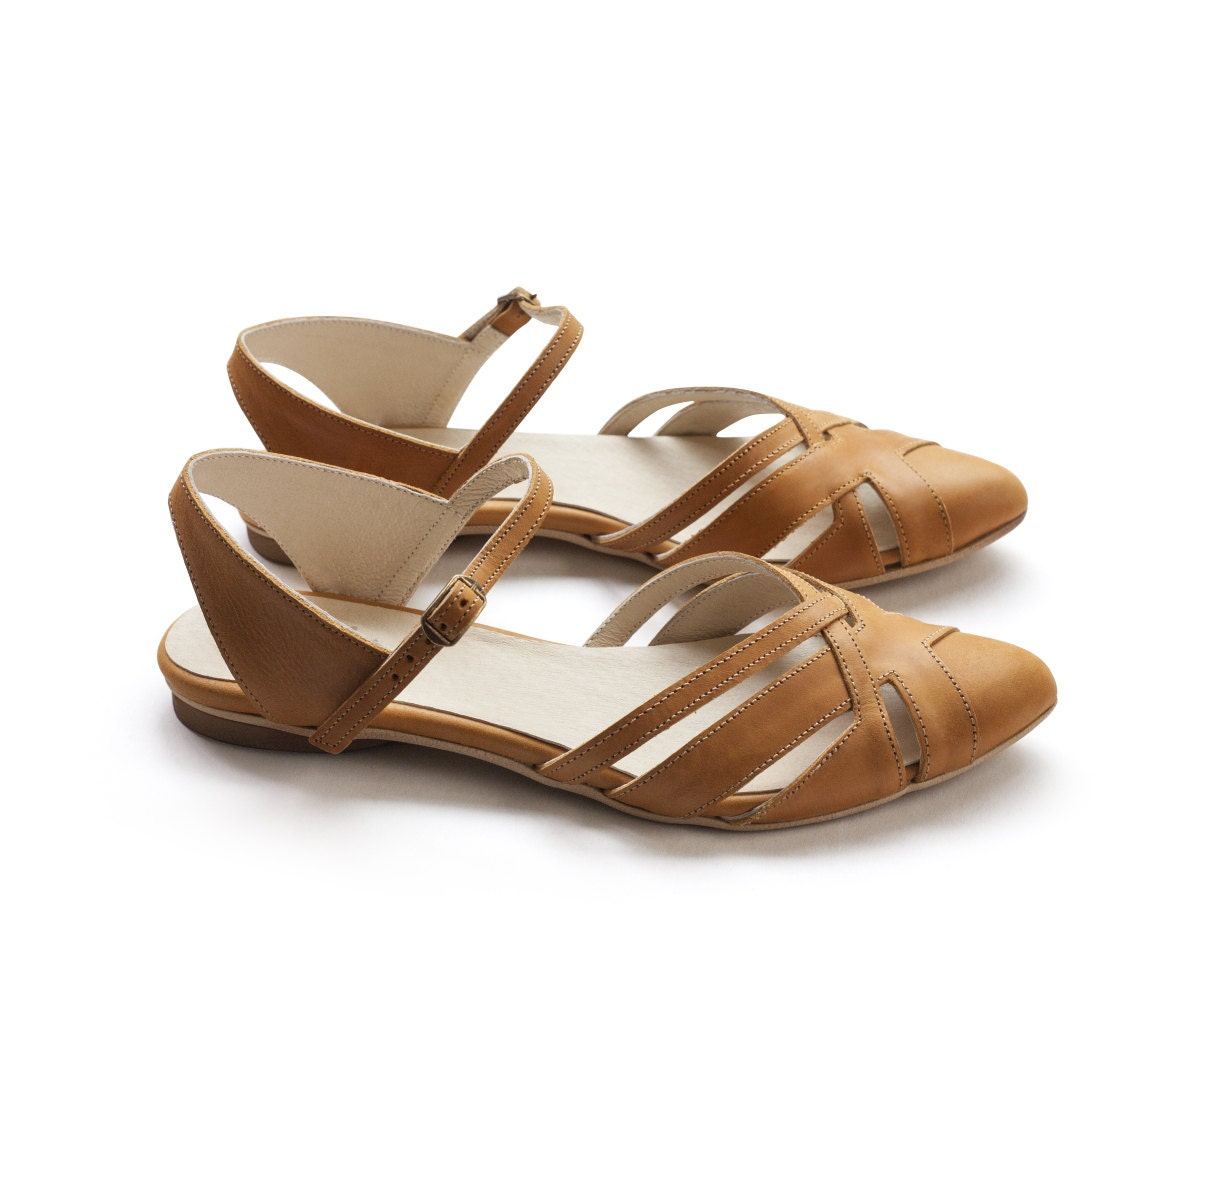 Shop women's shoes on sale at oraplanrans.tk and see our entire collection of sandals and wedges, oxfords, sneakers, heels and boots on sale. Cole Haan. FREE GROUND SHIPPING | $10 Flat Rate 2-DAY. Free Returns & Exchanges. FREE SHIPPING, RETURNS AND .